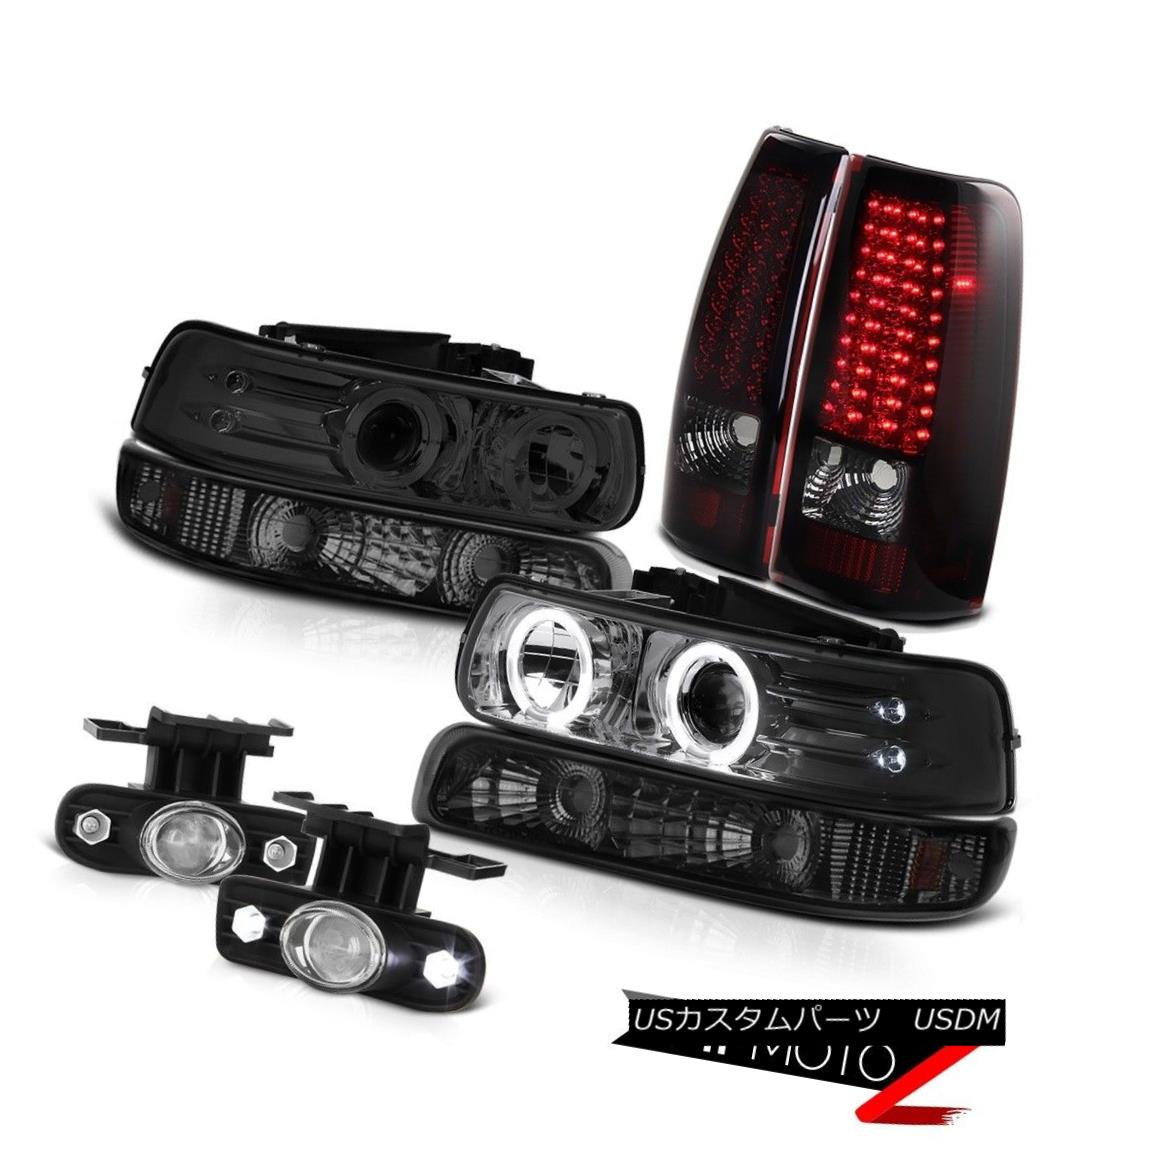 テールライト 1999-2002 Silverado 6.0L Halo LED Headlights Smoke Signal Taillights Fog Lights 1999-2002 Silverado 6.0L Halo LEDヘッドライト煙信号曇り灯